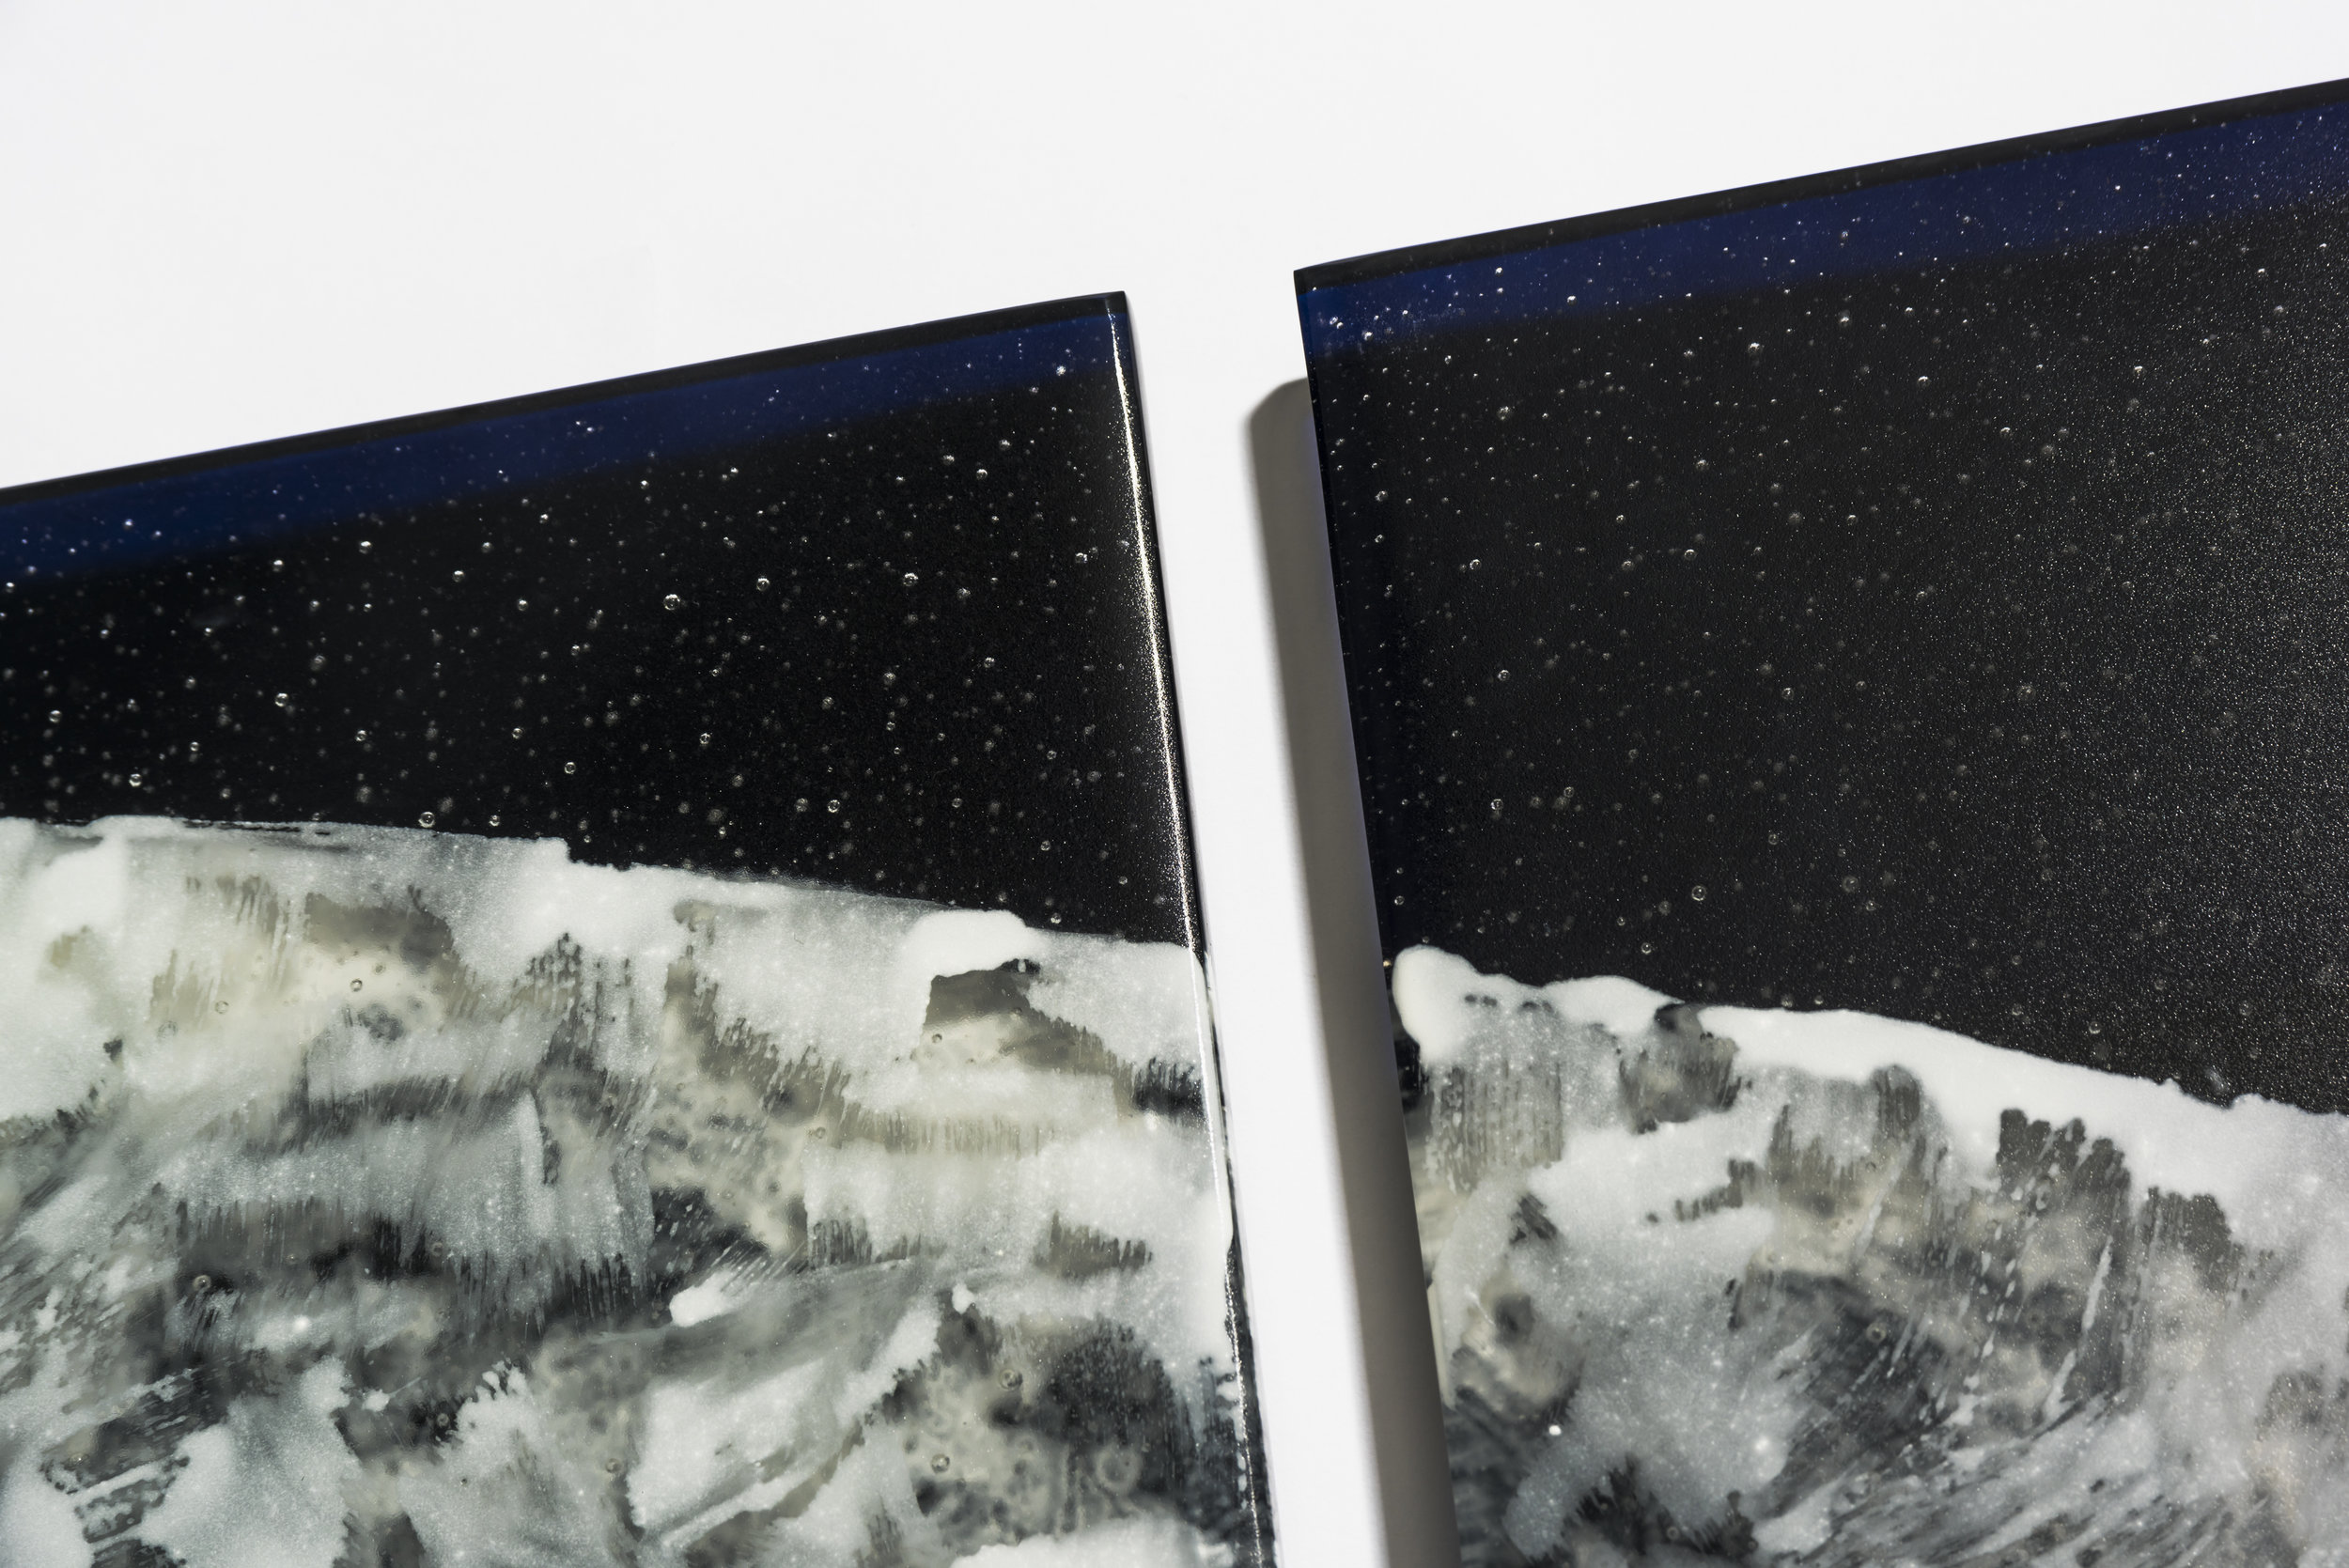 Lisa Cahill, Nocturnal  (detail),2017,kiln formed and enameled glass,48 x 130 x 2 cm. Photos: Greg Piper.